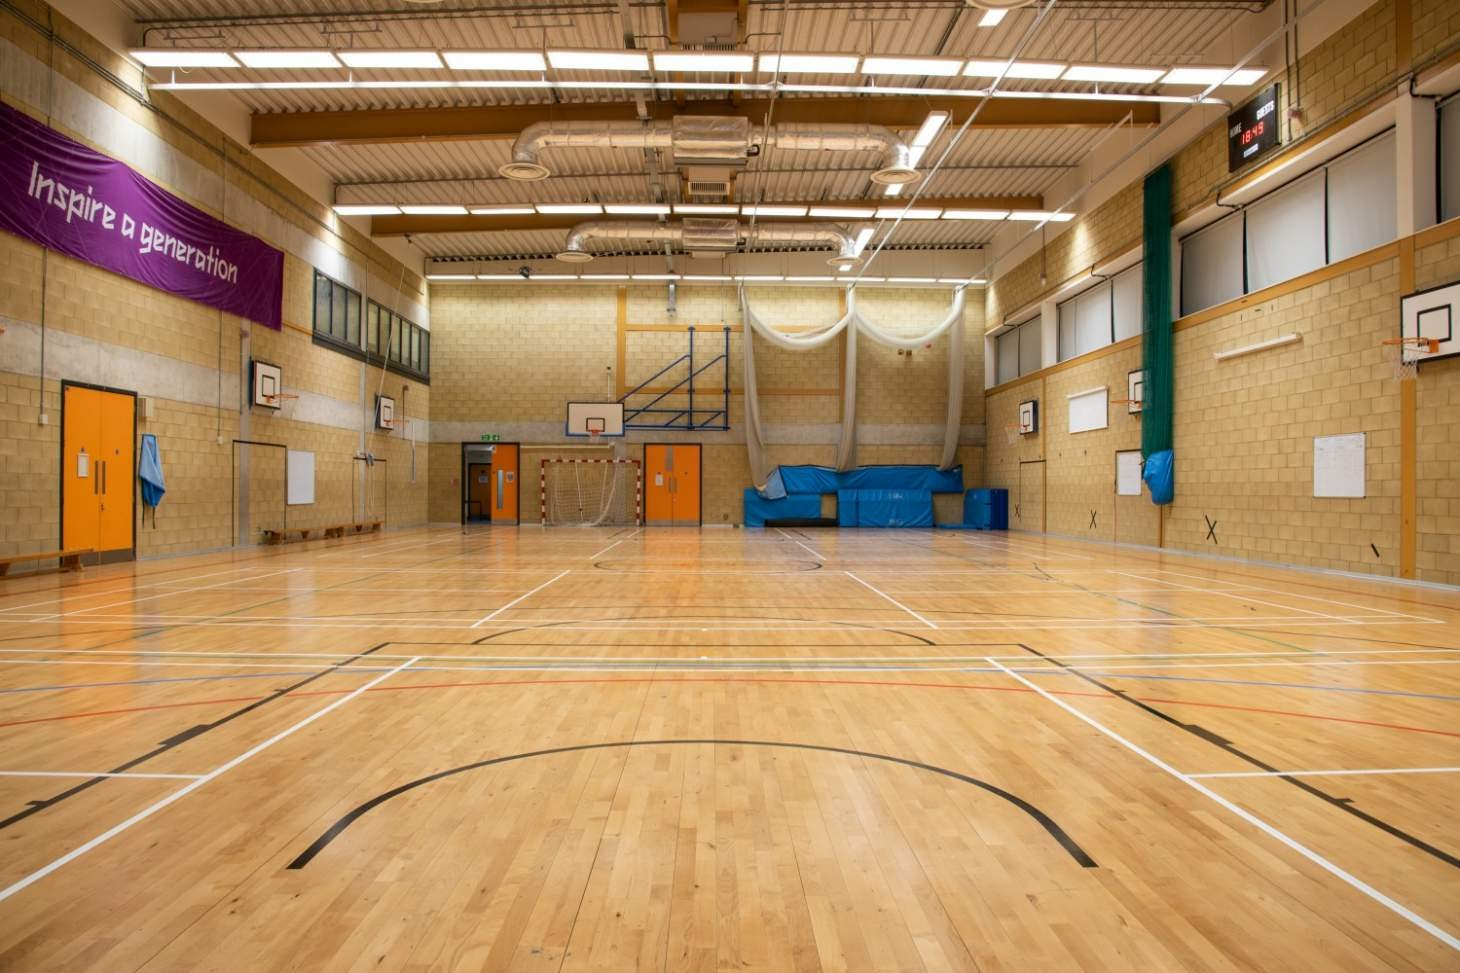 The Petchey Academy Sports Club Court | Sports hall handball court